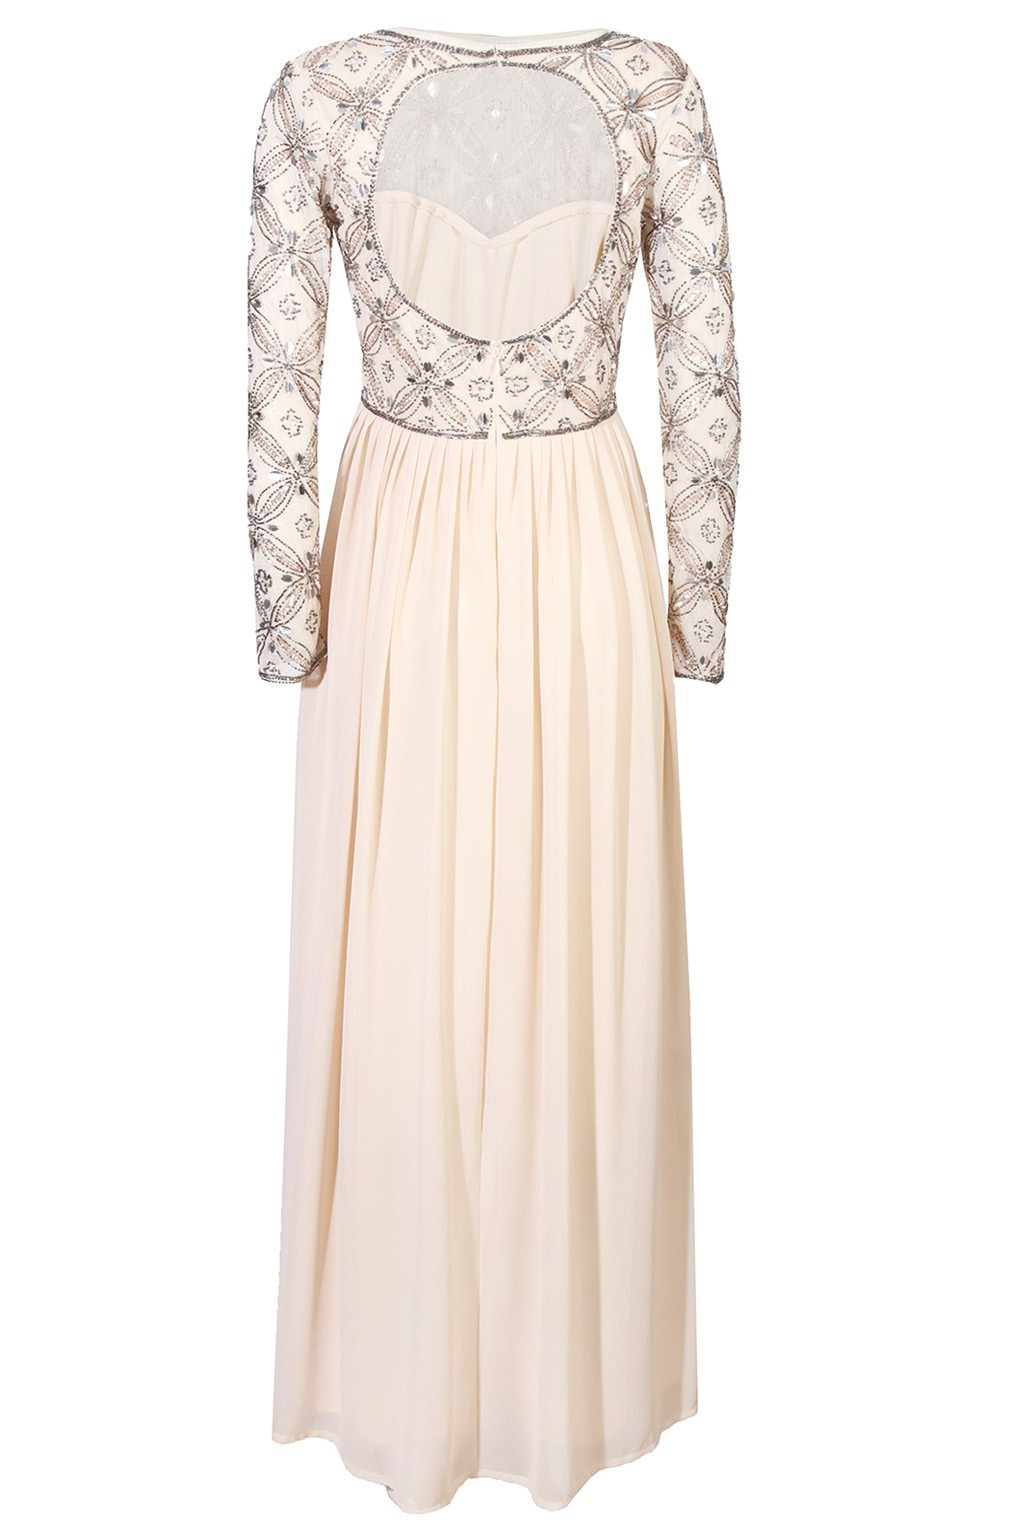 Lace Beads Carnation Cream Maxi Dress Party Dresses